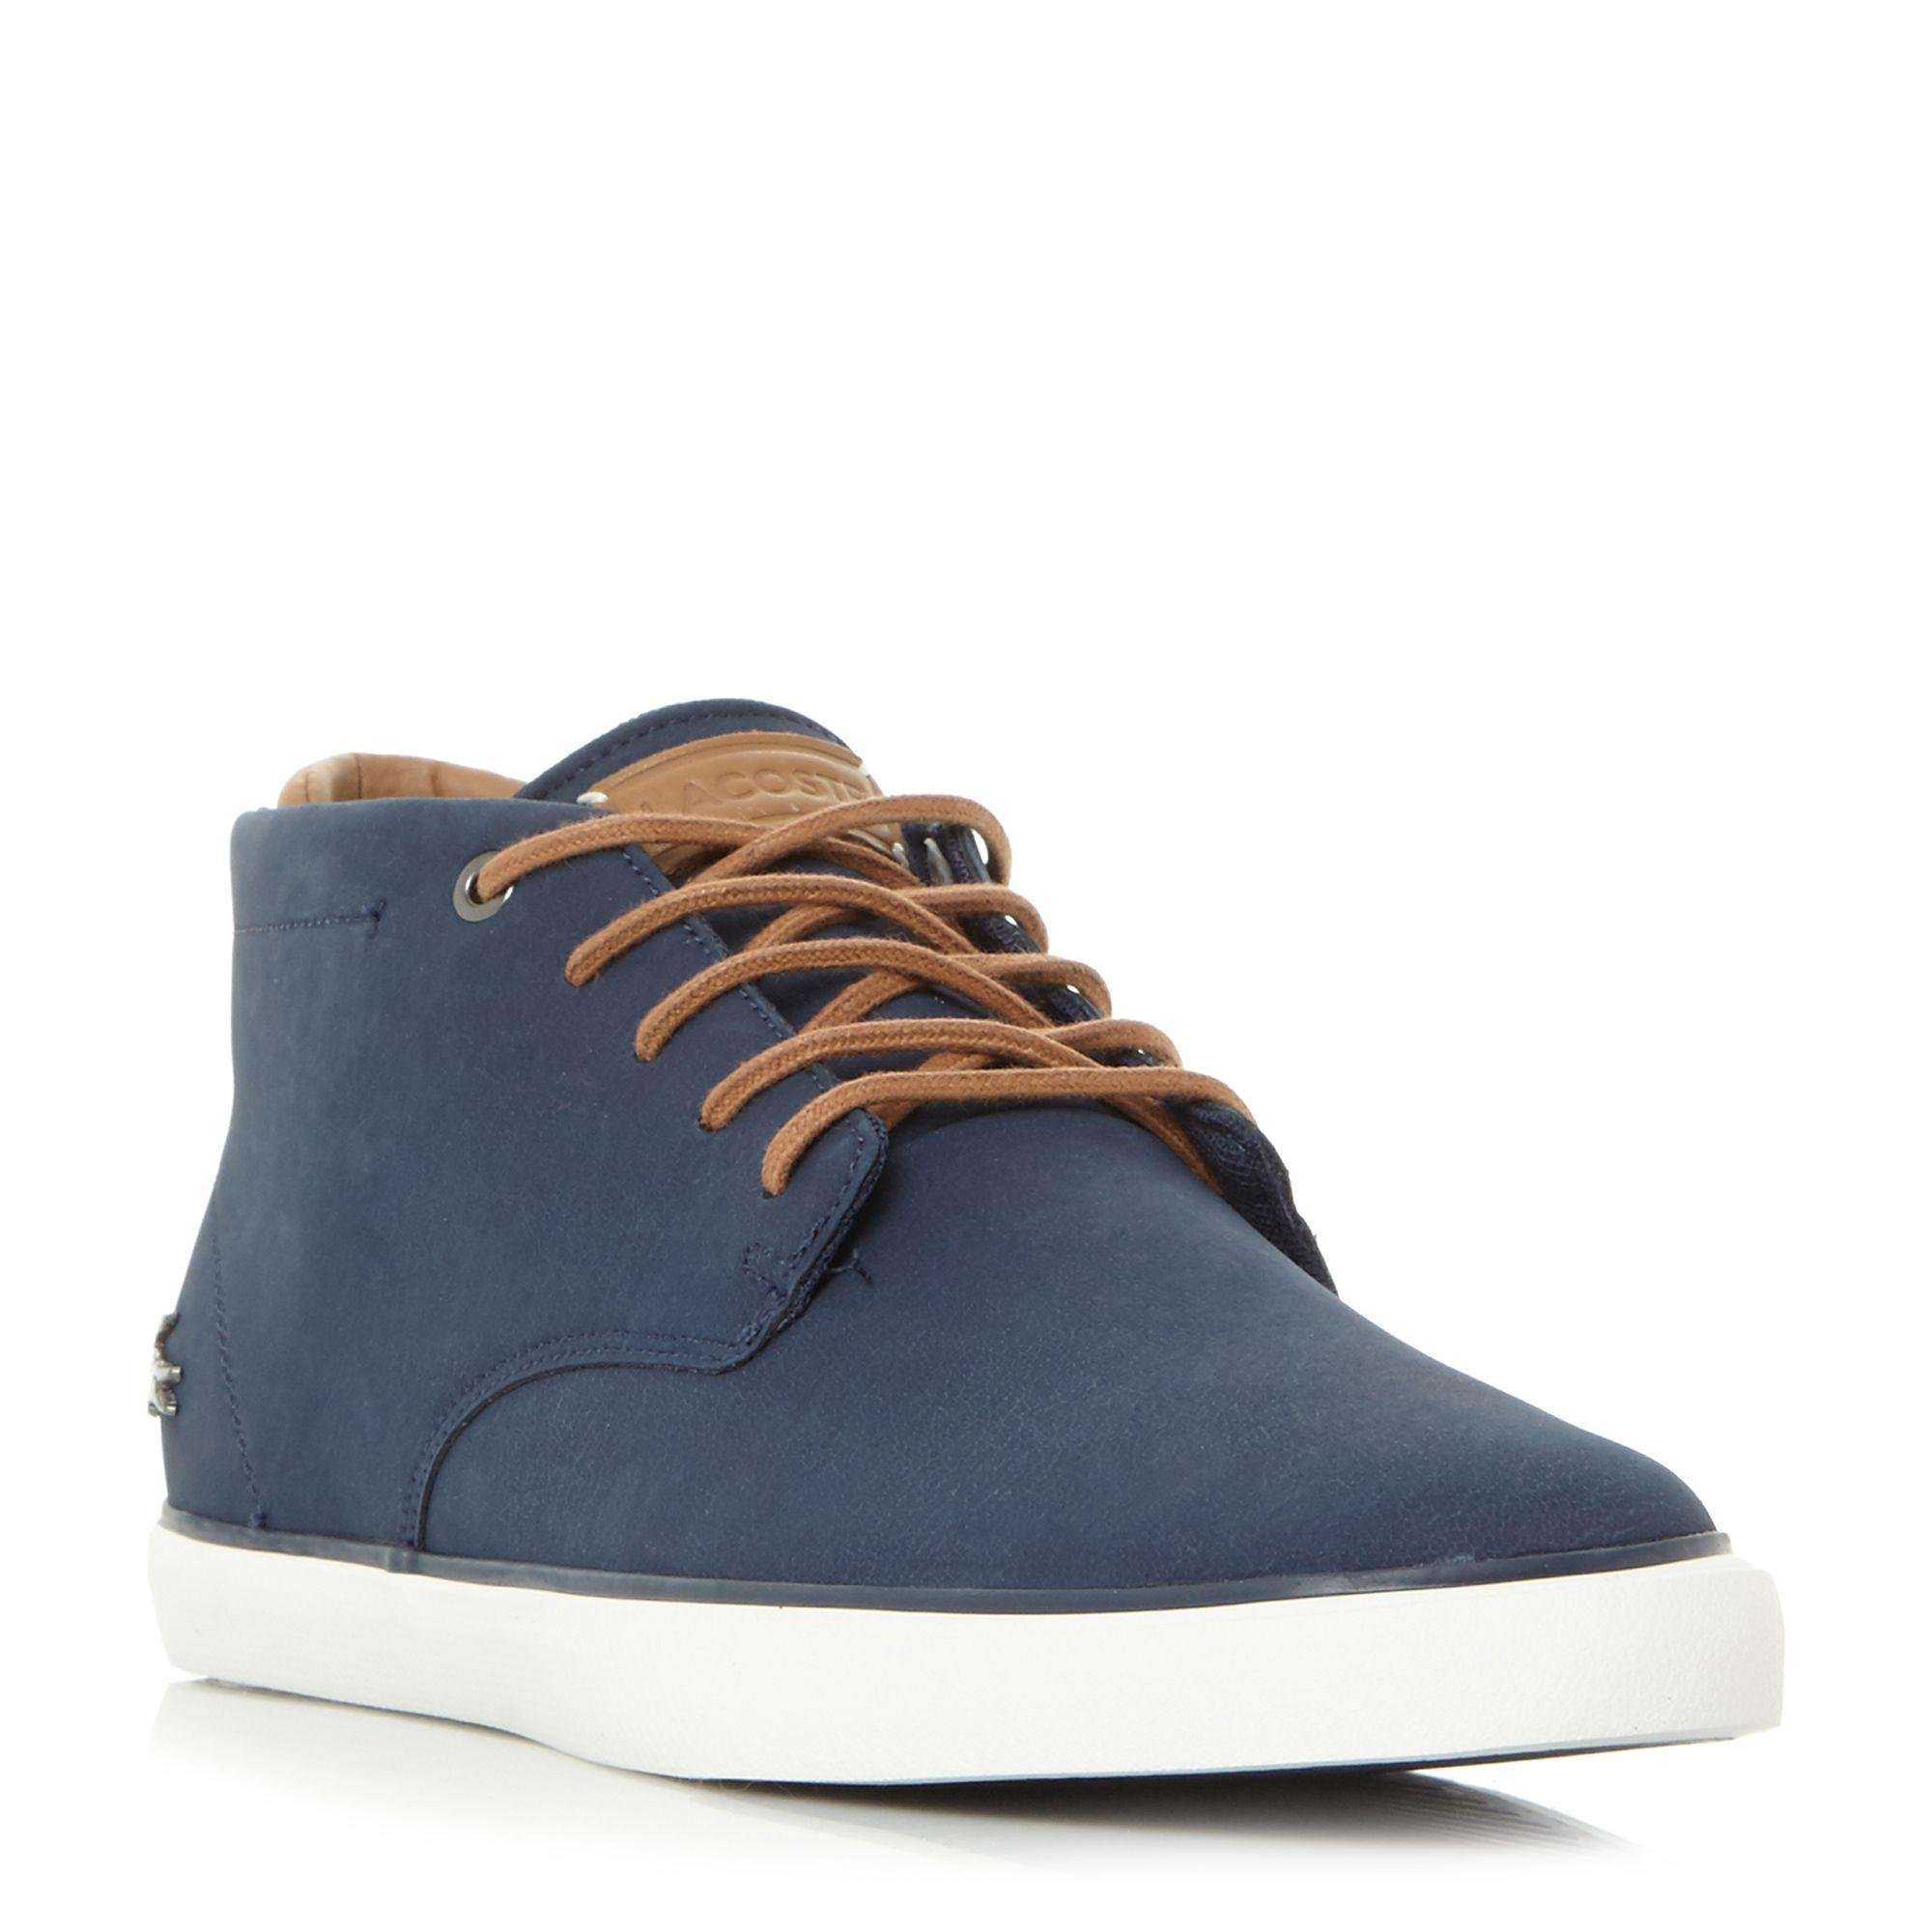 Lacoste Men's Esparre Chukka 318 1 Leather/Suede Derby Chukka Boots - / - UK 10 uOyCh